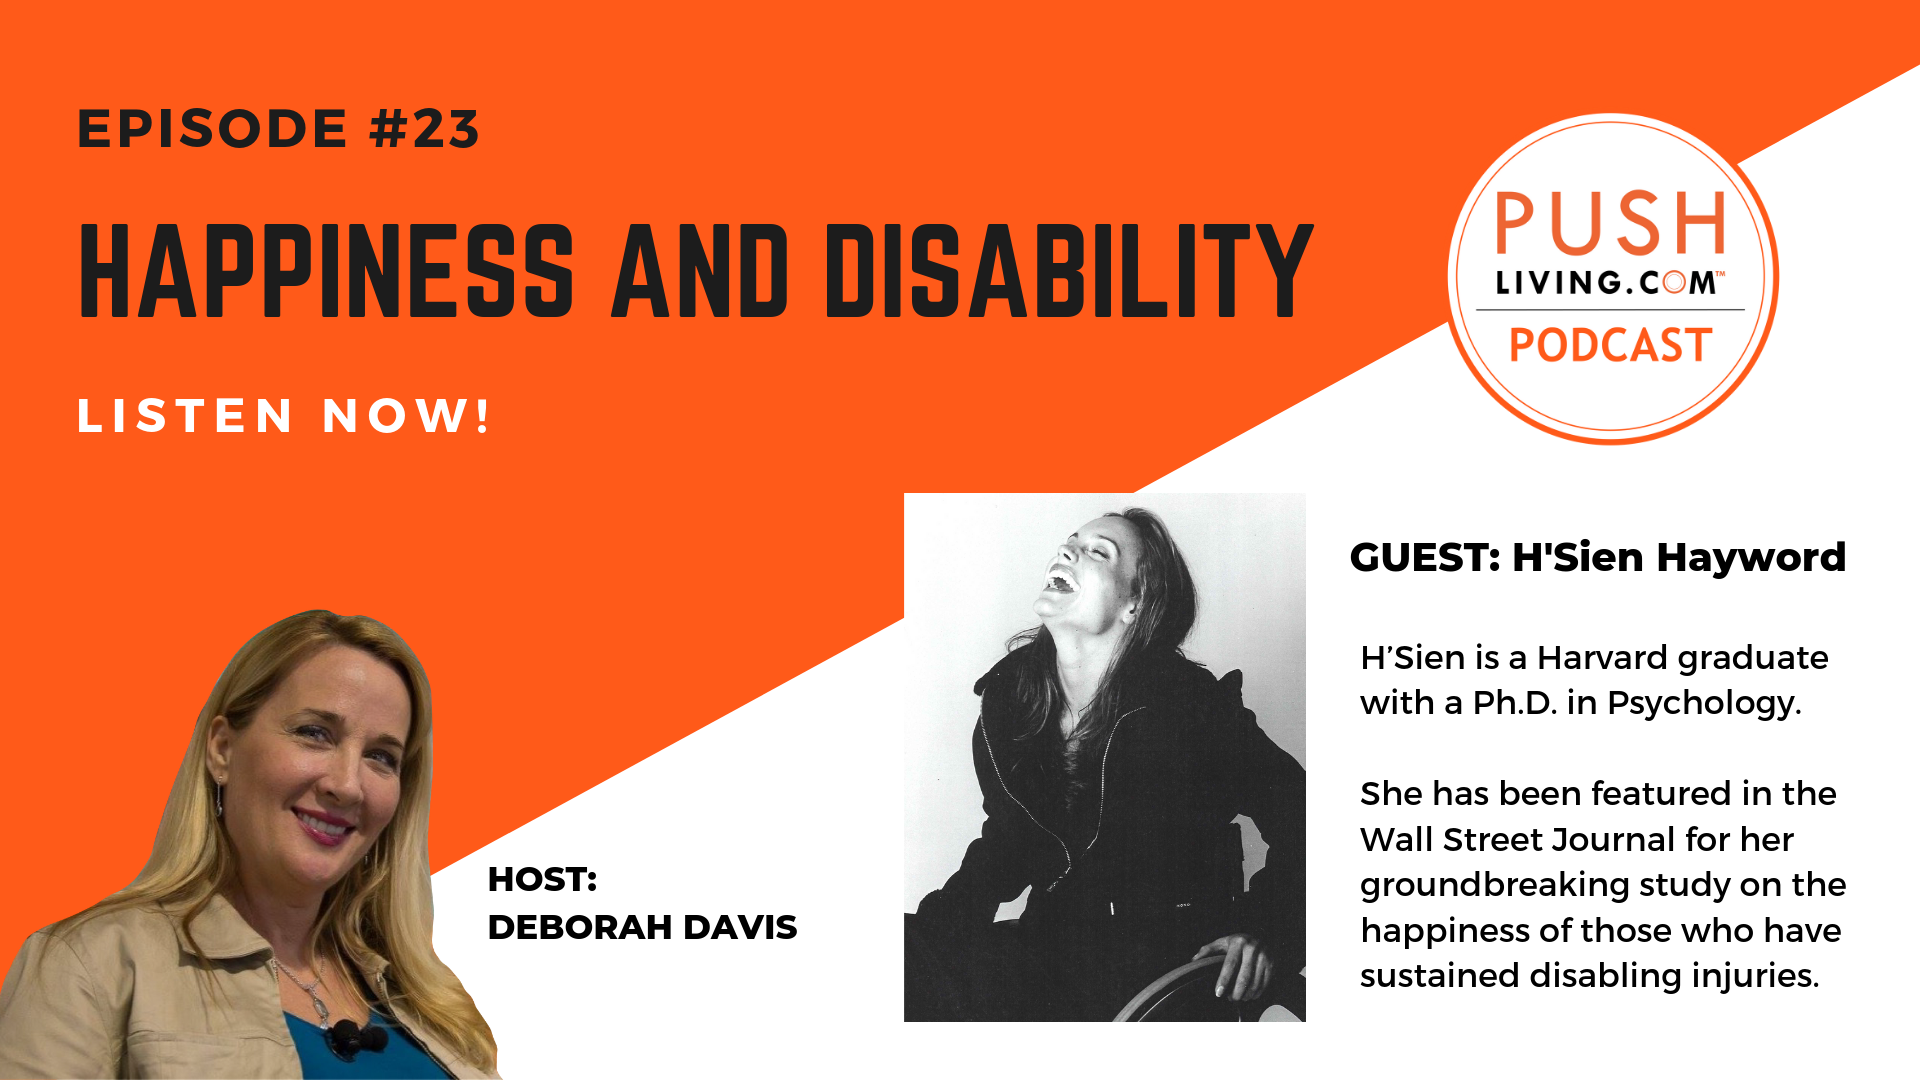 Podcast23 COVER - PUSHLiving Podcast #23: Happiness and Disability with H'Sien Hayword, PH.D